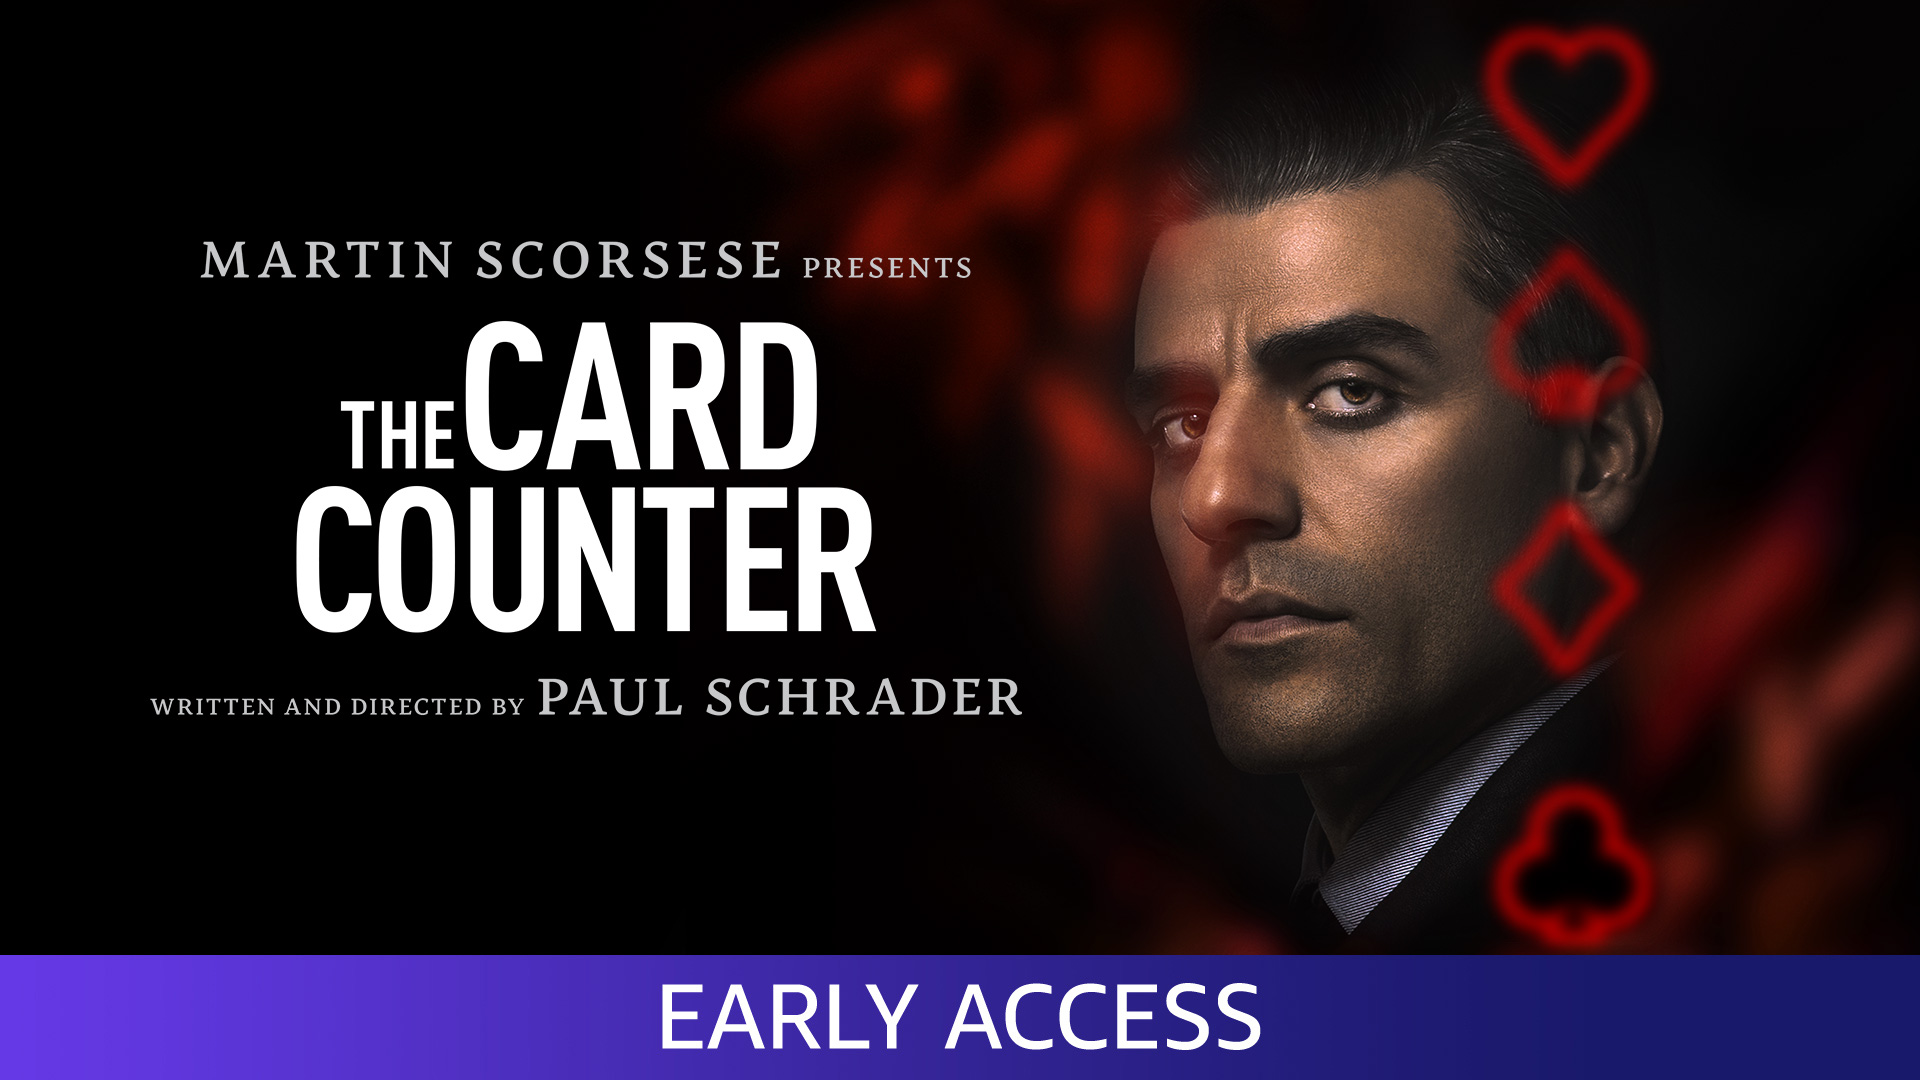 The Card Counter (4K UHD)